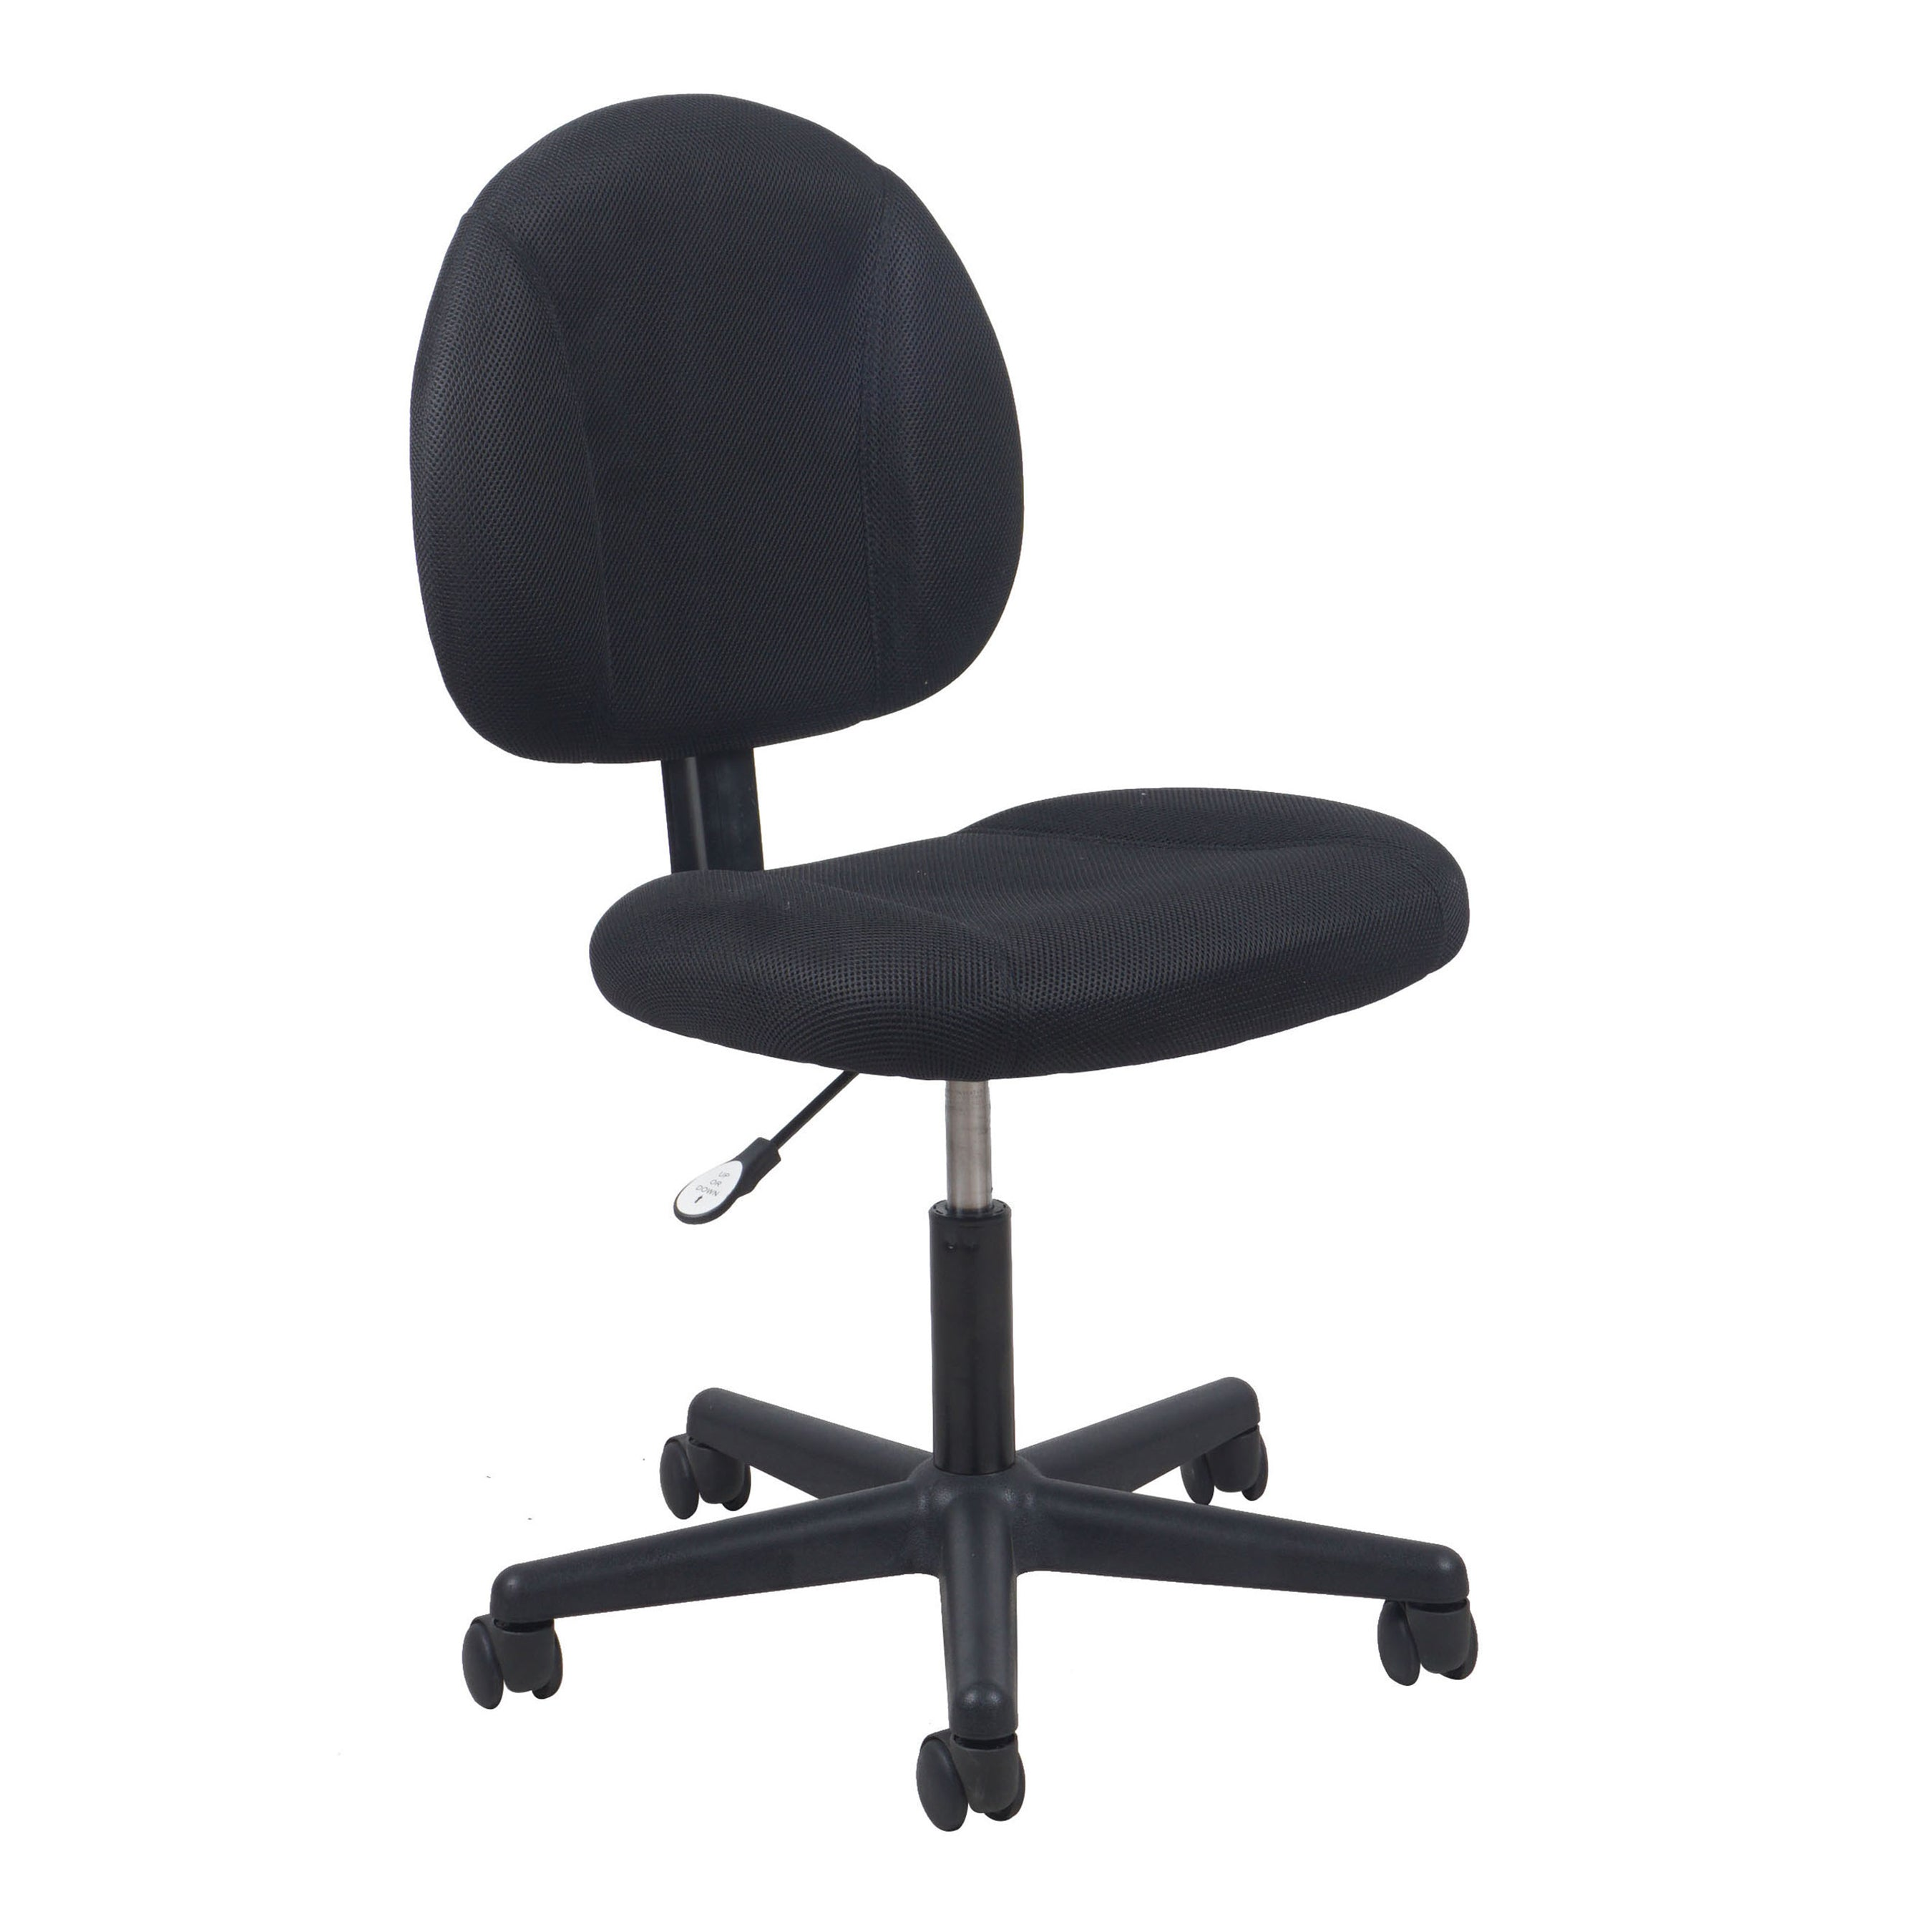 Model ESS-3060 Essentials by OFM Swivel Upholstered Armless Task Chair